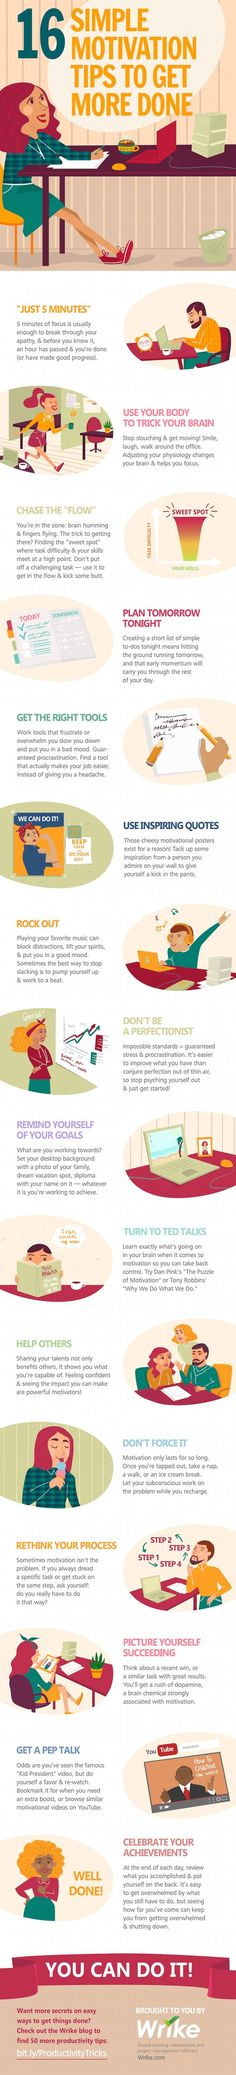 16 Easy to try. Easy to incorporate and very effective Motivation Tips To Get More Done - #Infographic: